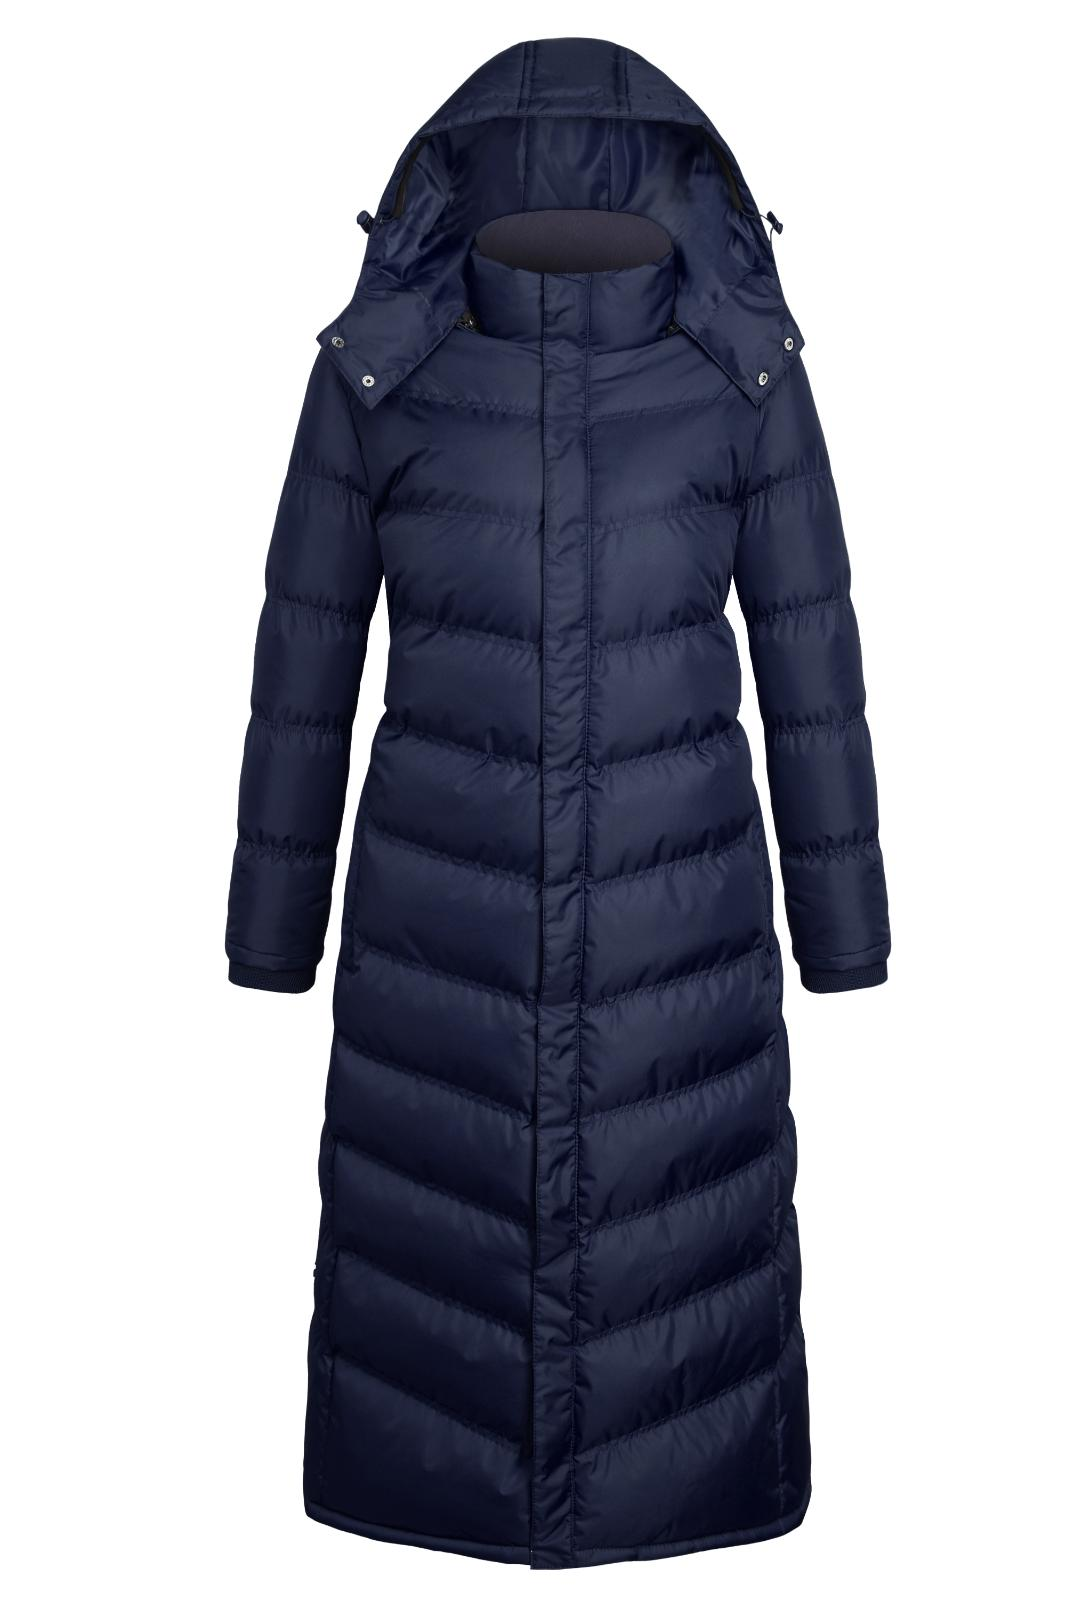 Women's Winter Full Length Padded Quilted Puffer Jacket